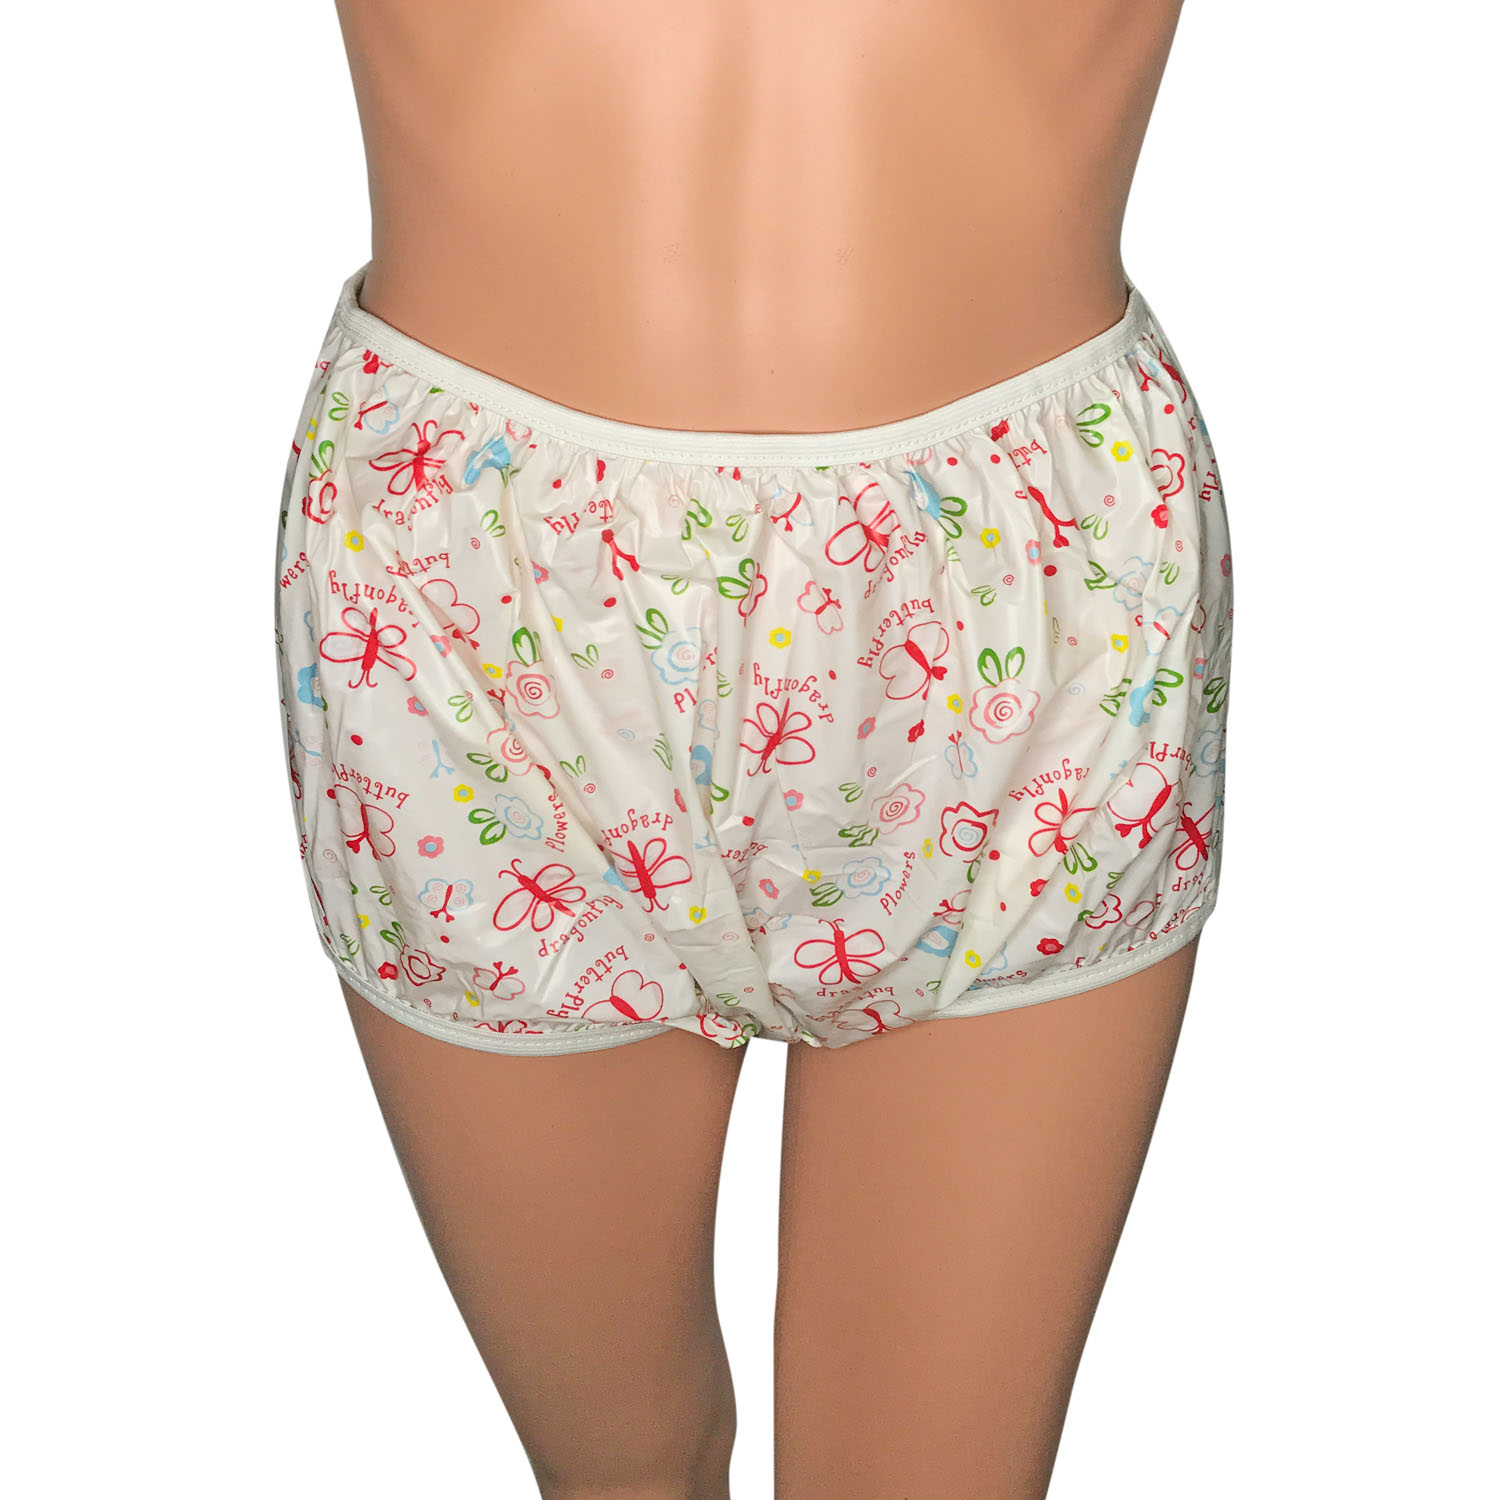 Adult Size Butterfly Pink Pull Up PVC Diaper Plastic Pants Incontinence Briefs image